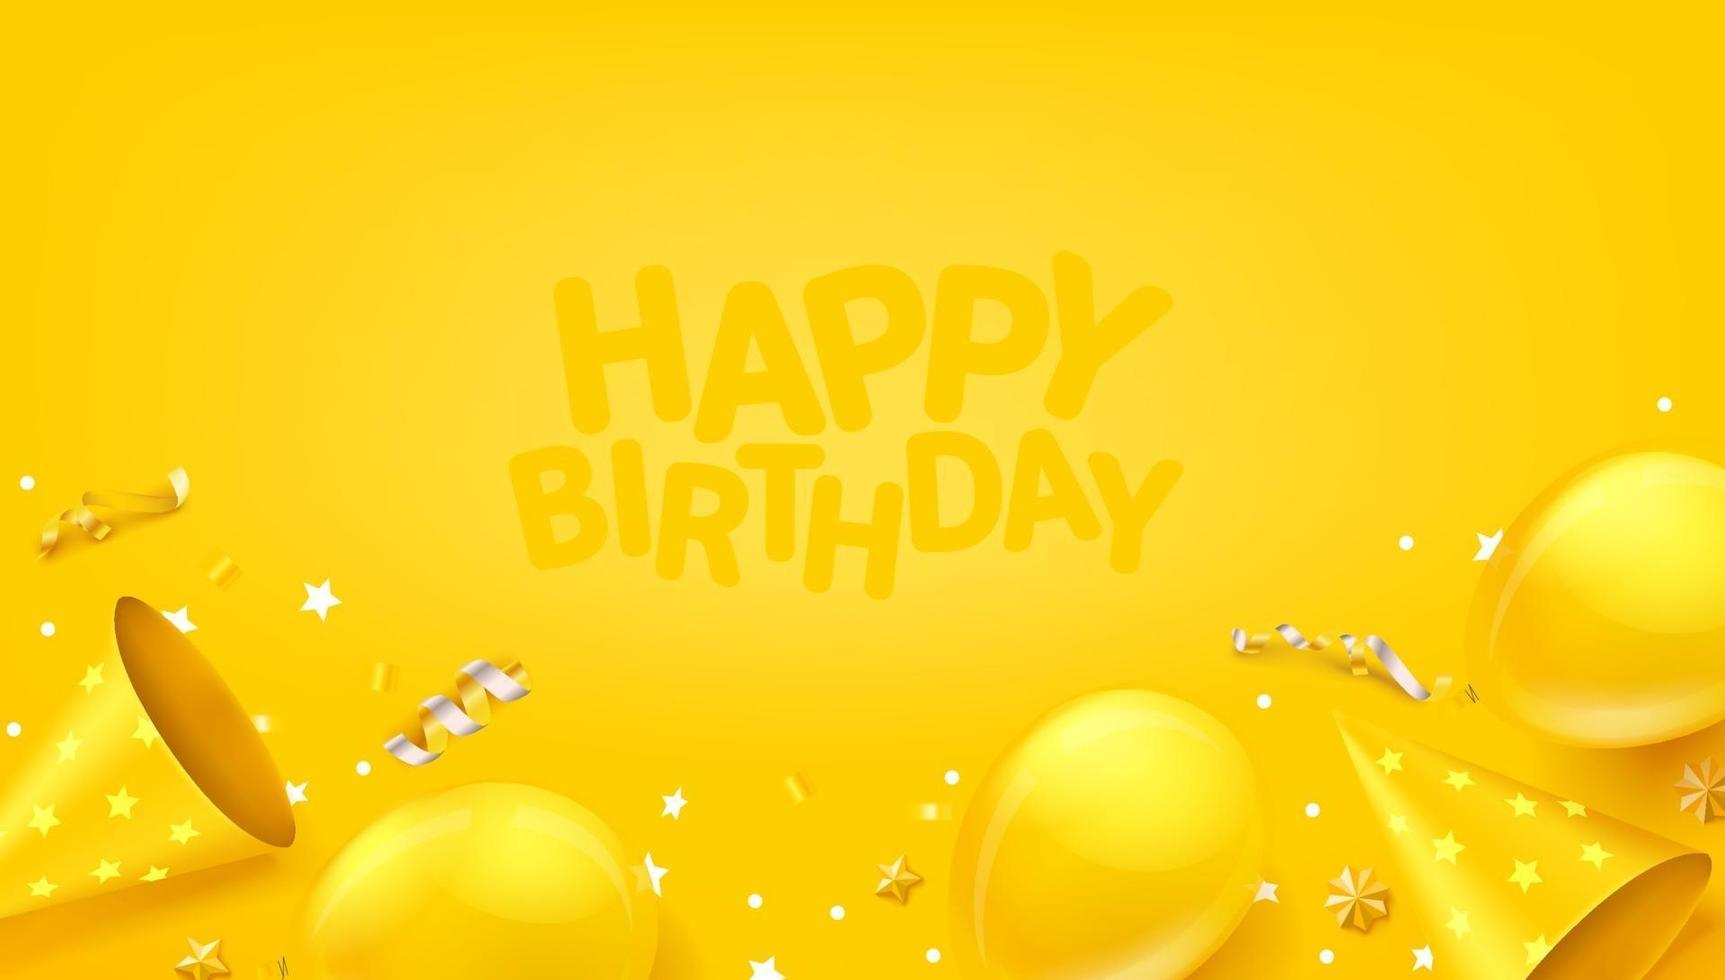 Happy birthday vector banner with ballons, confetti and hats